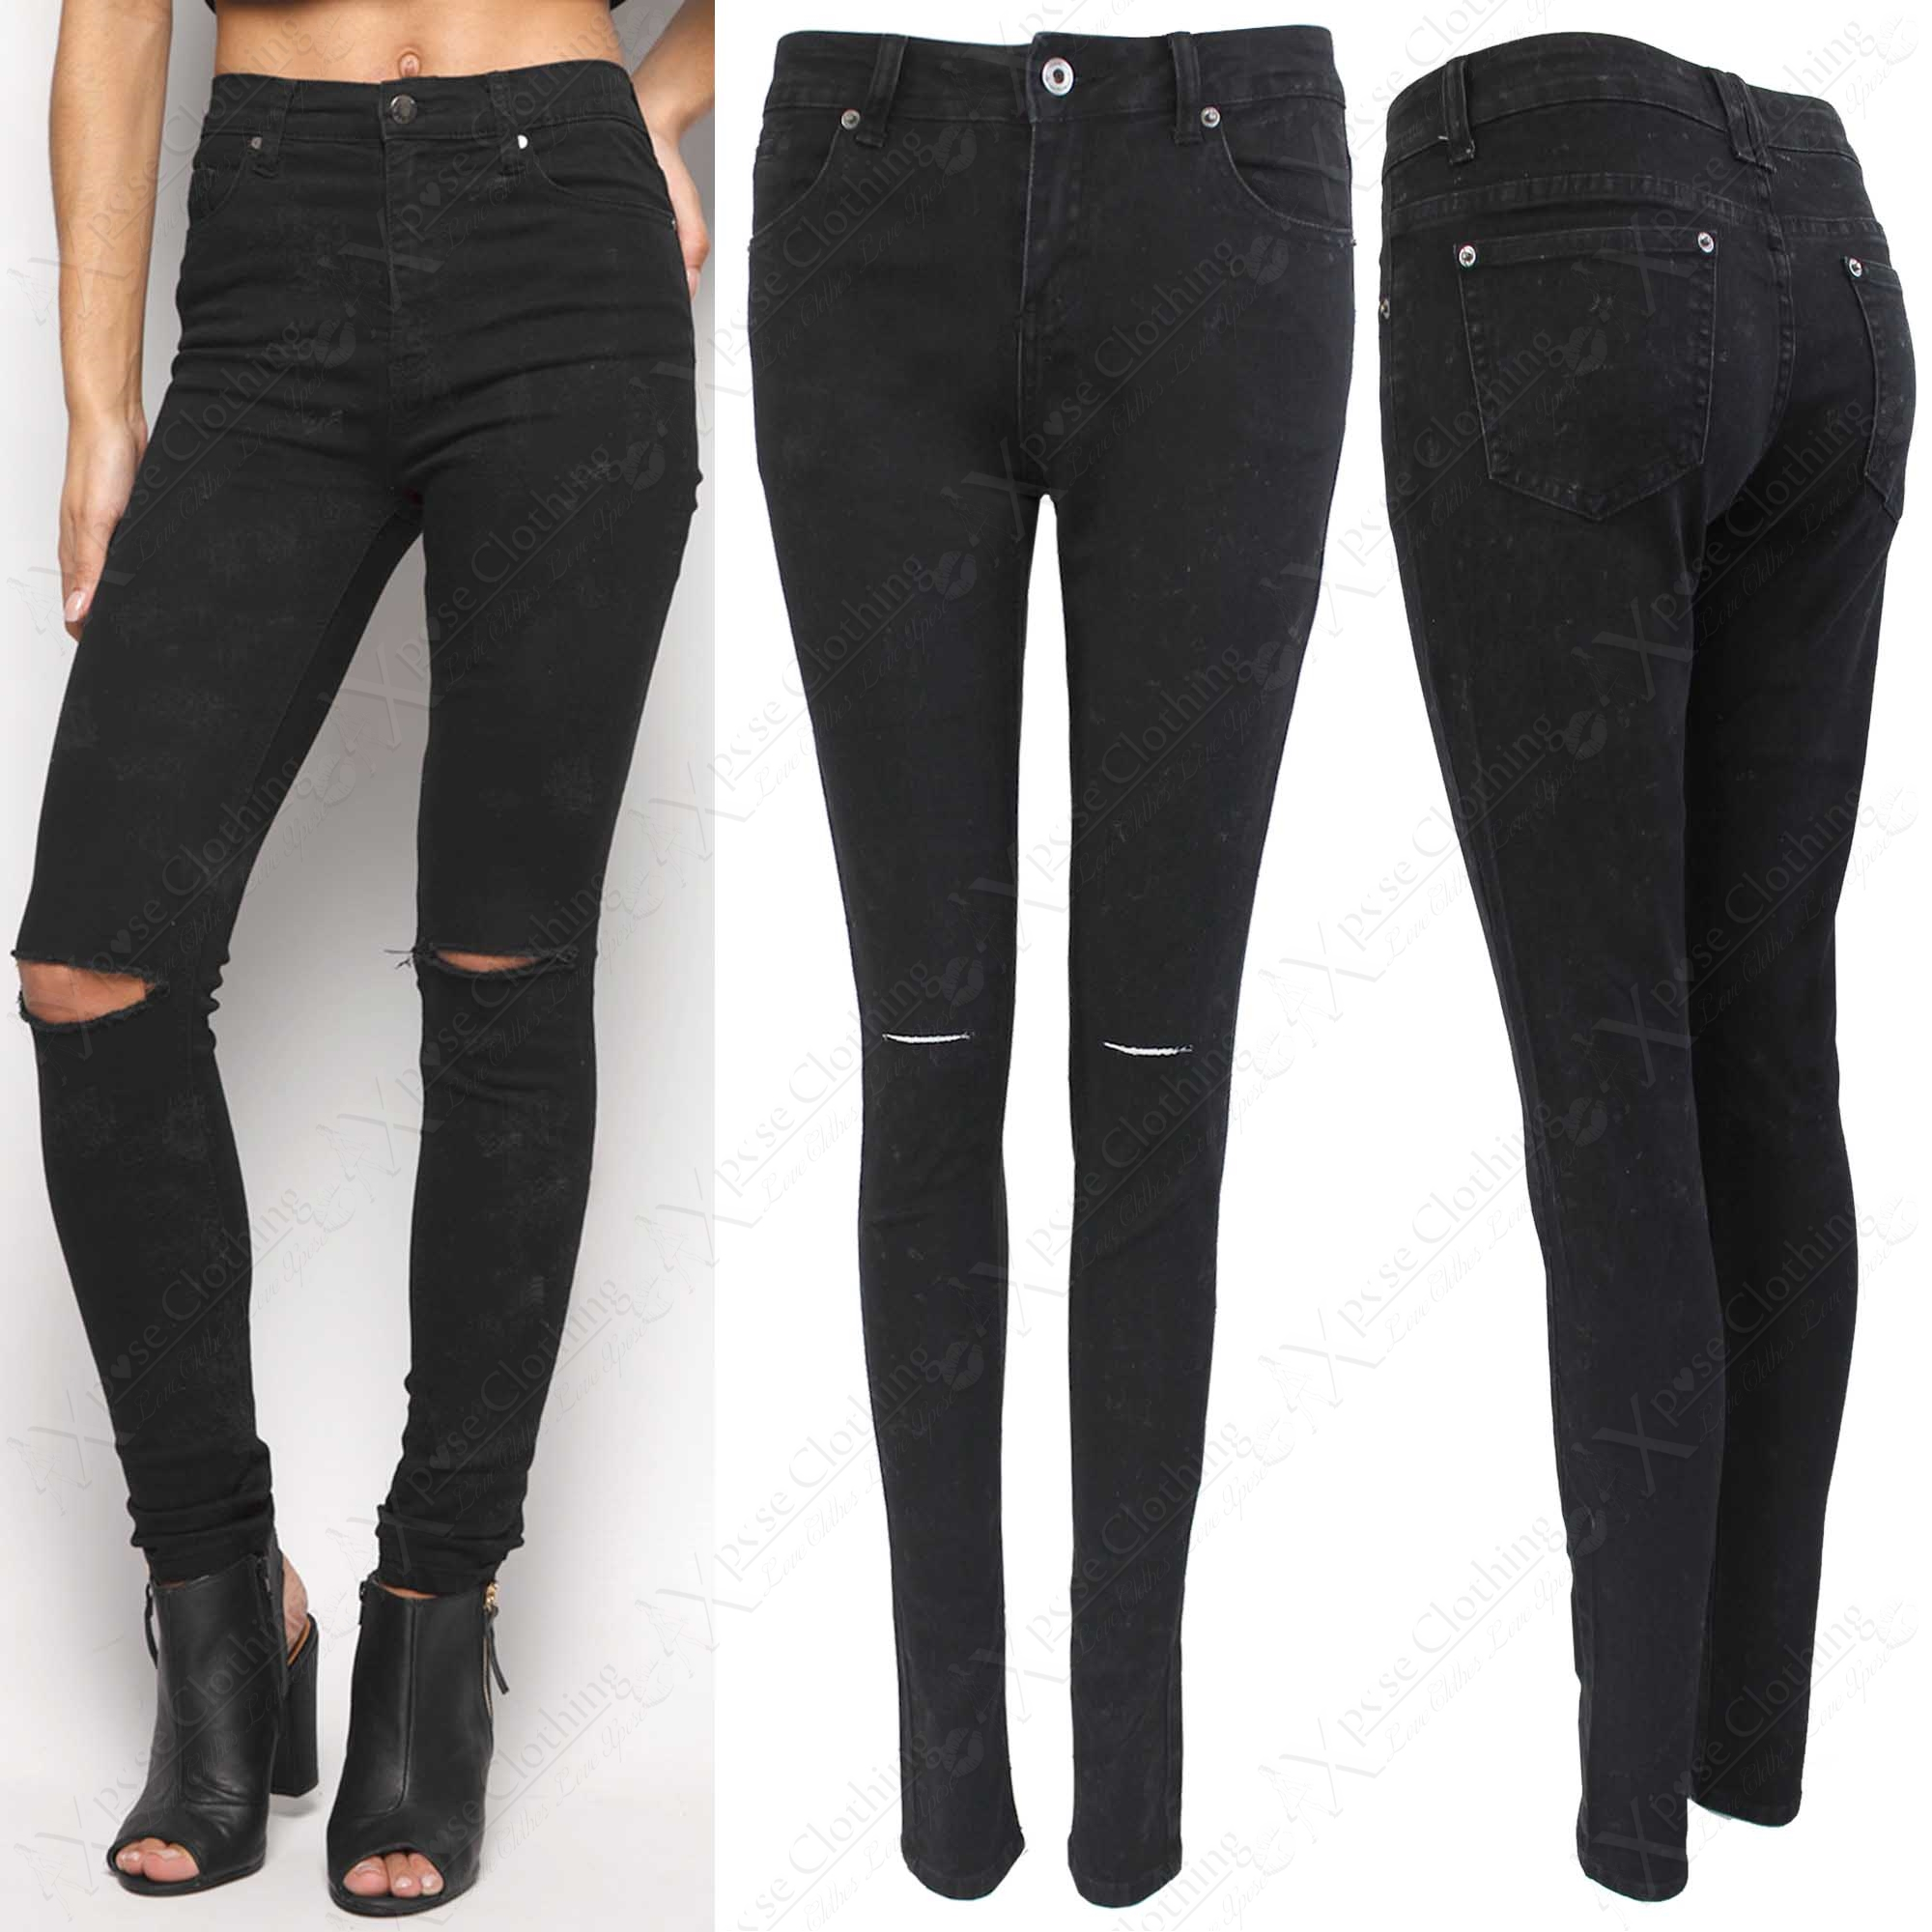 NEW LADIES BLACK RIP KNEE SKINNY JEANS WOMENS RIPPED CUT STRETCH ...